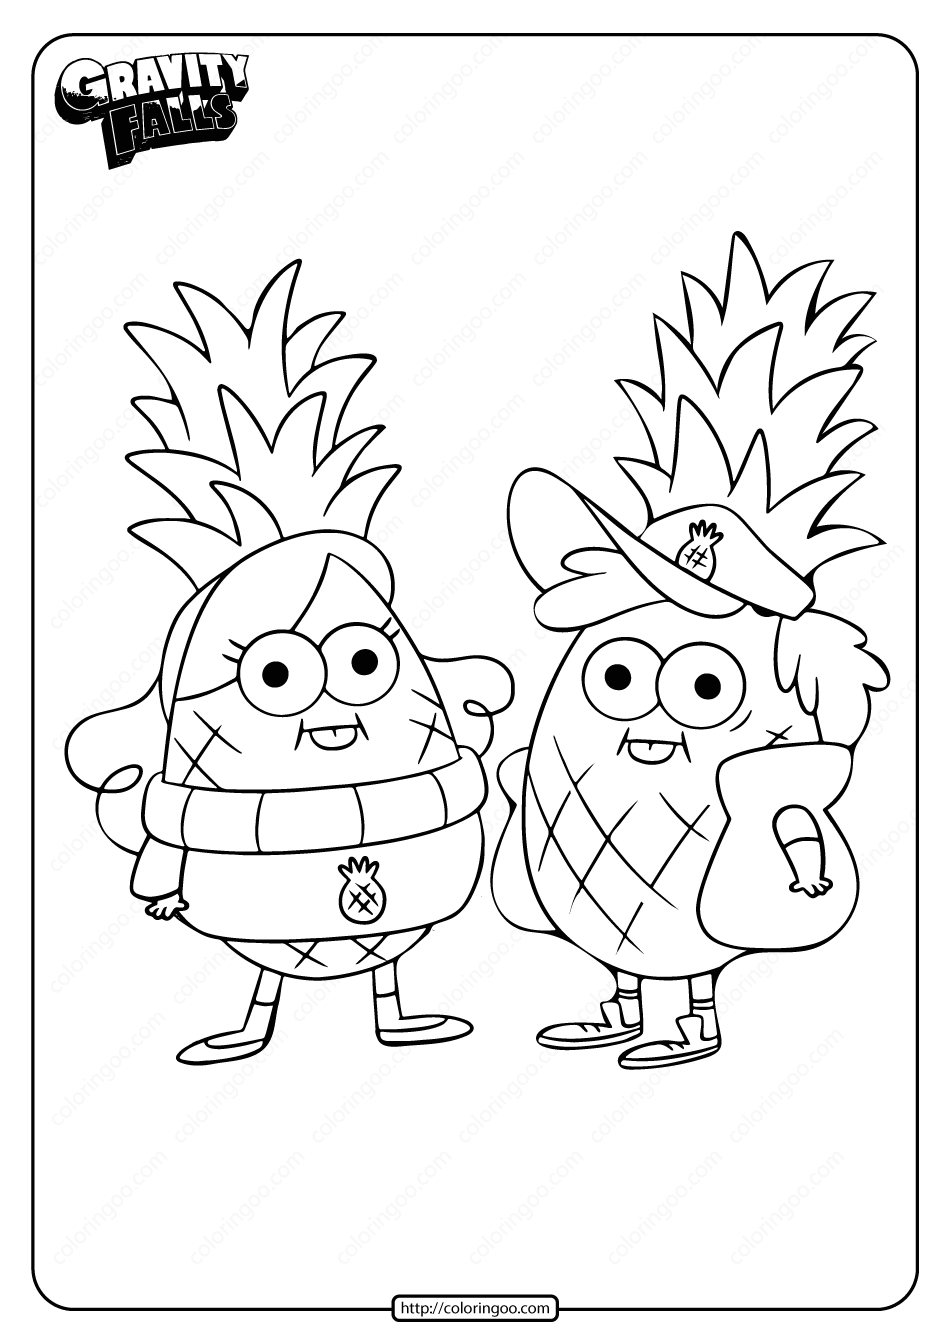 Gravity Falls Dipper and Mabel Coloring Page